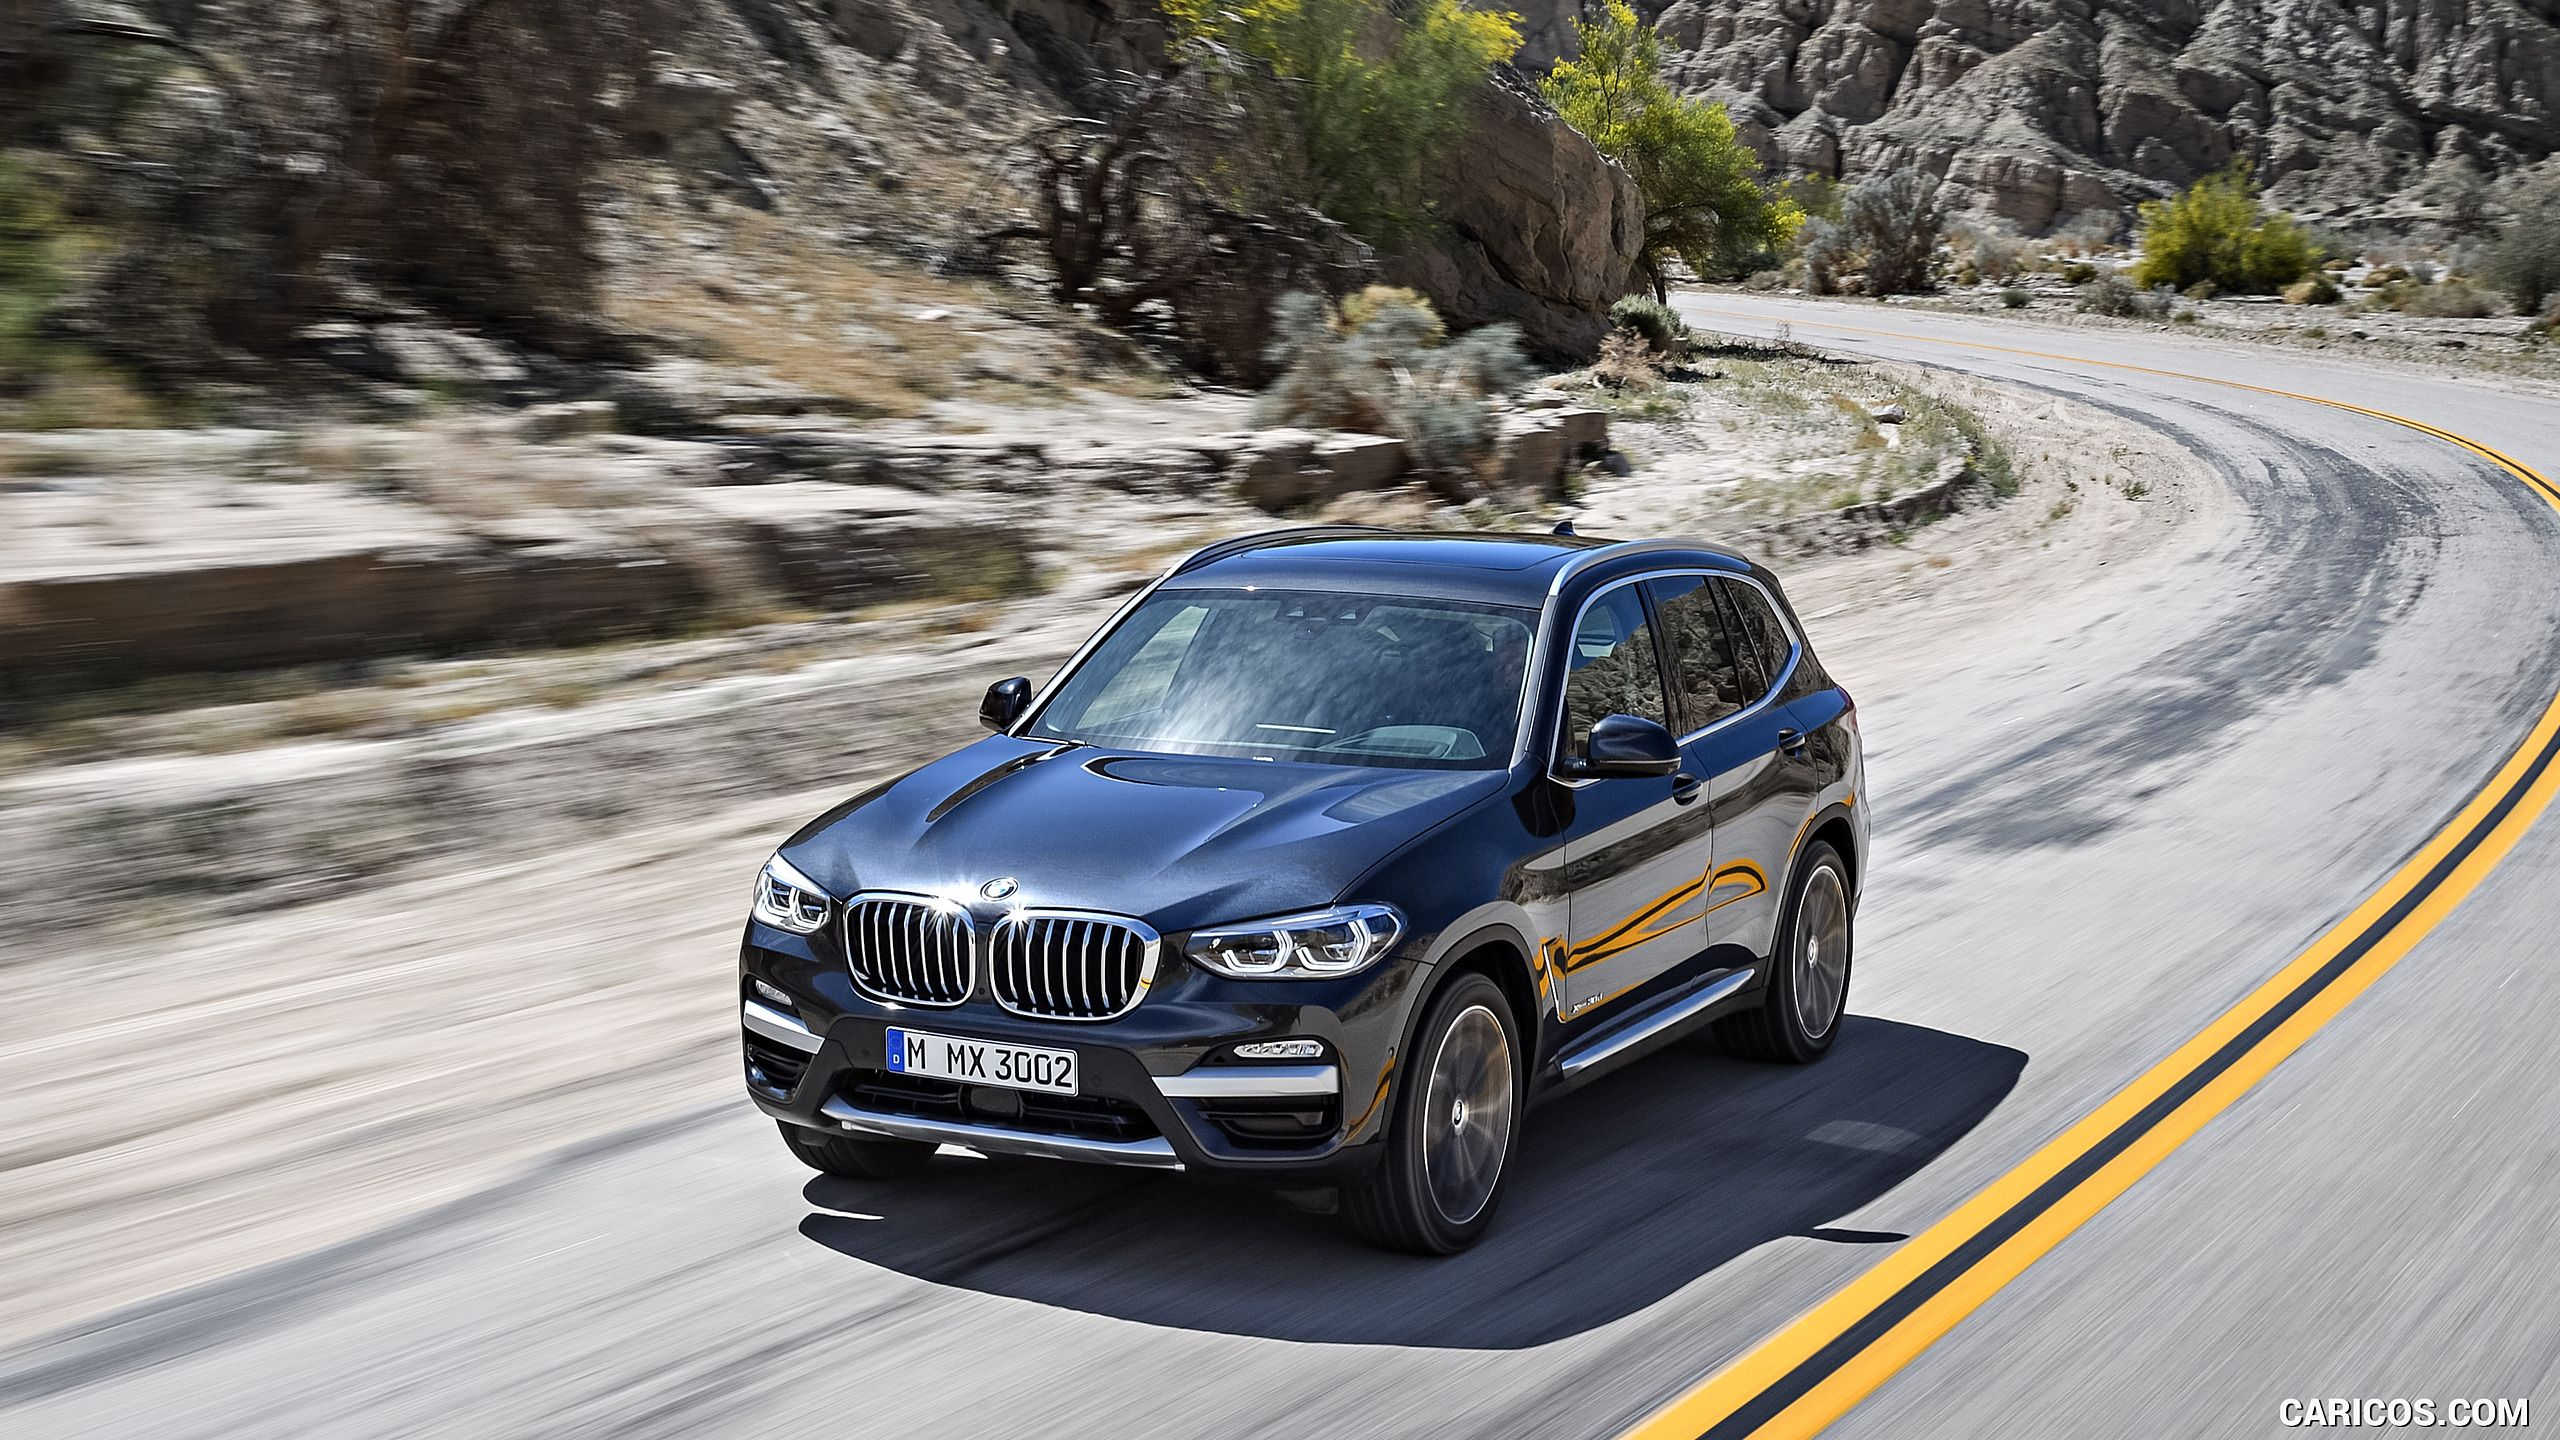 2018 bmw x3 and x3 m40i wallpaper bmw x3 2018 pinterest bmw x3 bmw and cars. Black Bedroom Furniture Sets. Home Design Ideas